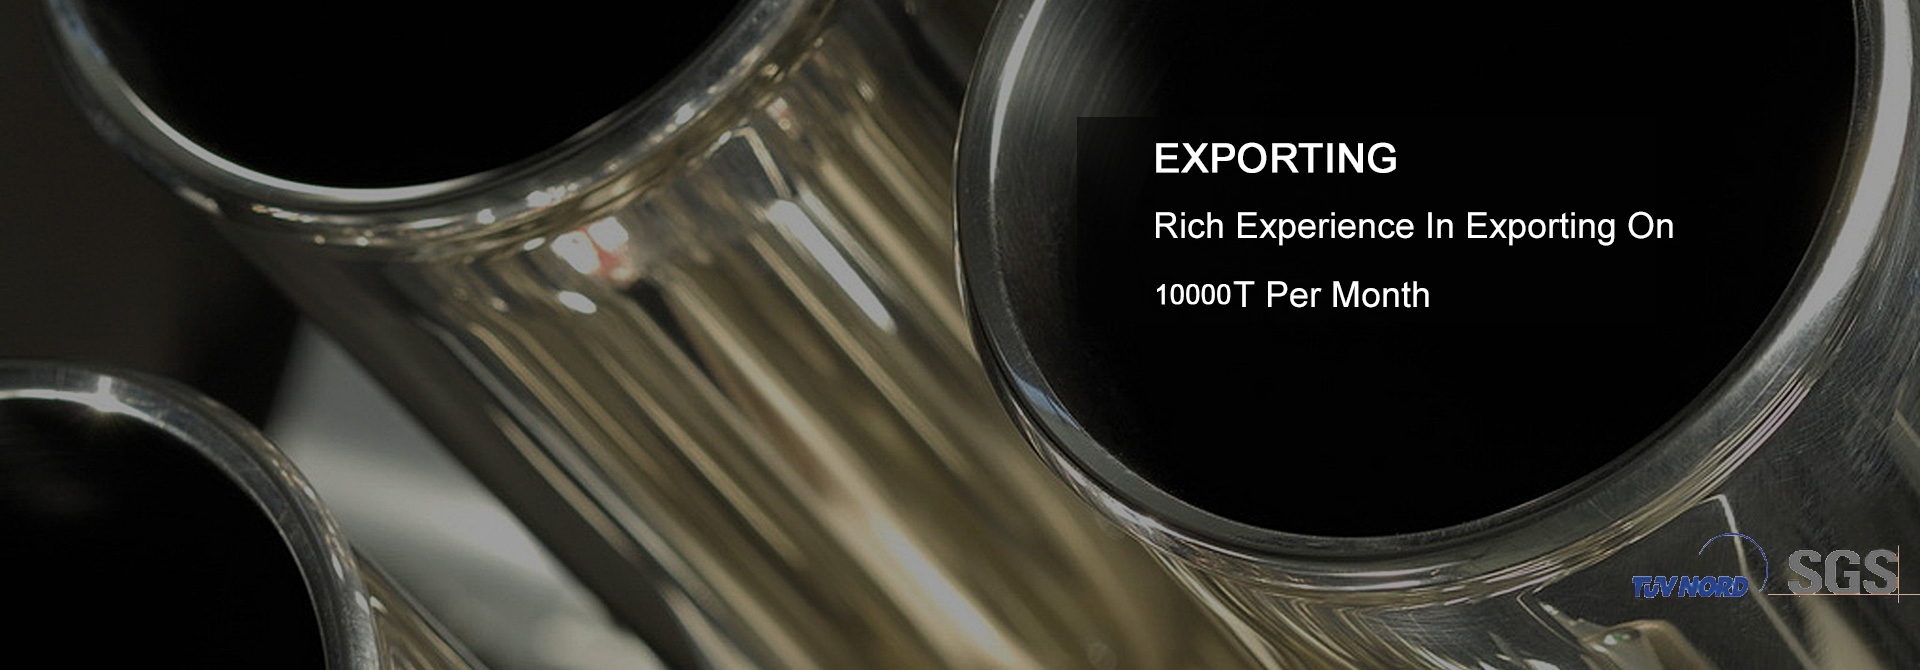 Rich Experience In Exporting On 10000T Per Month